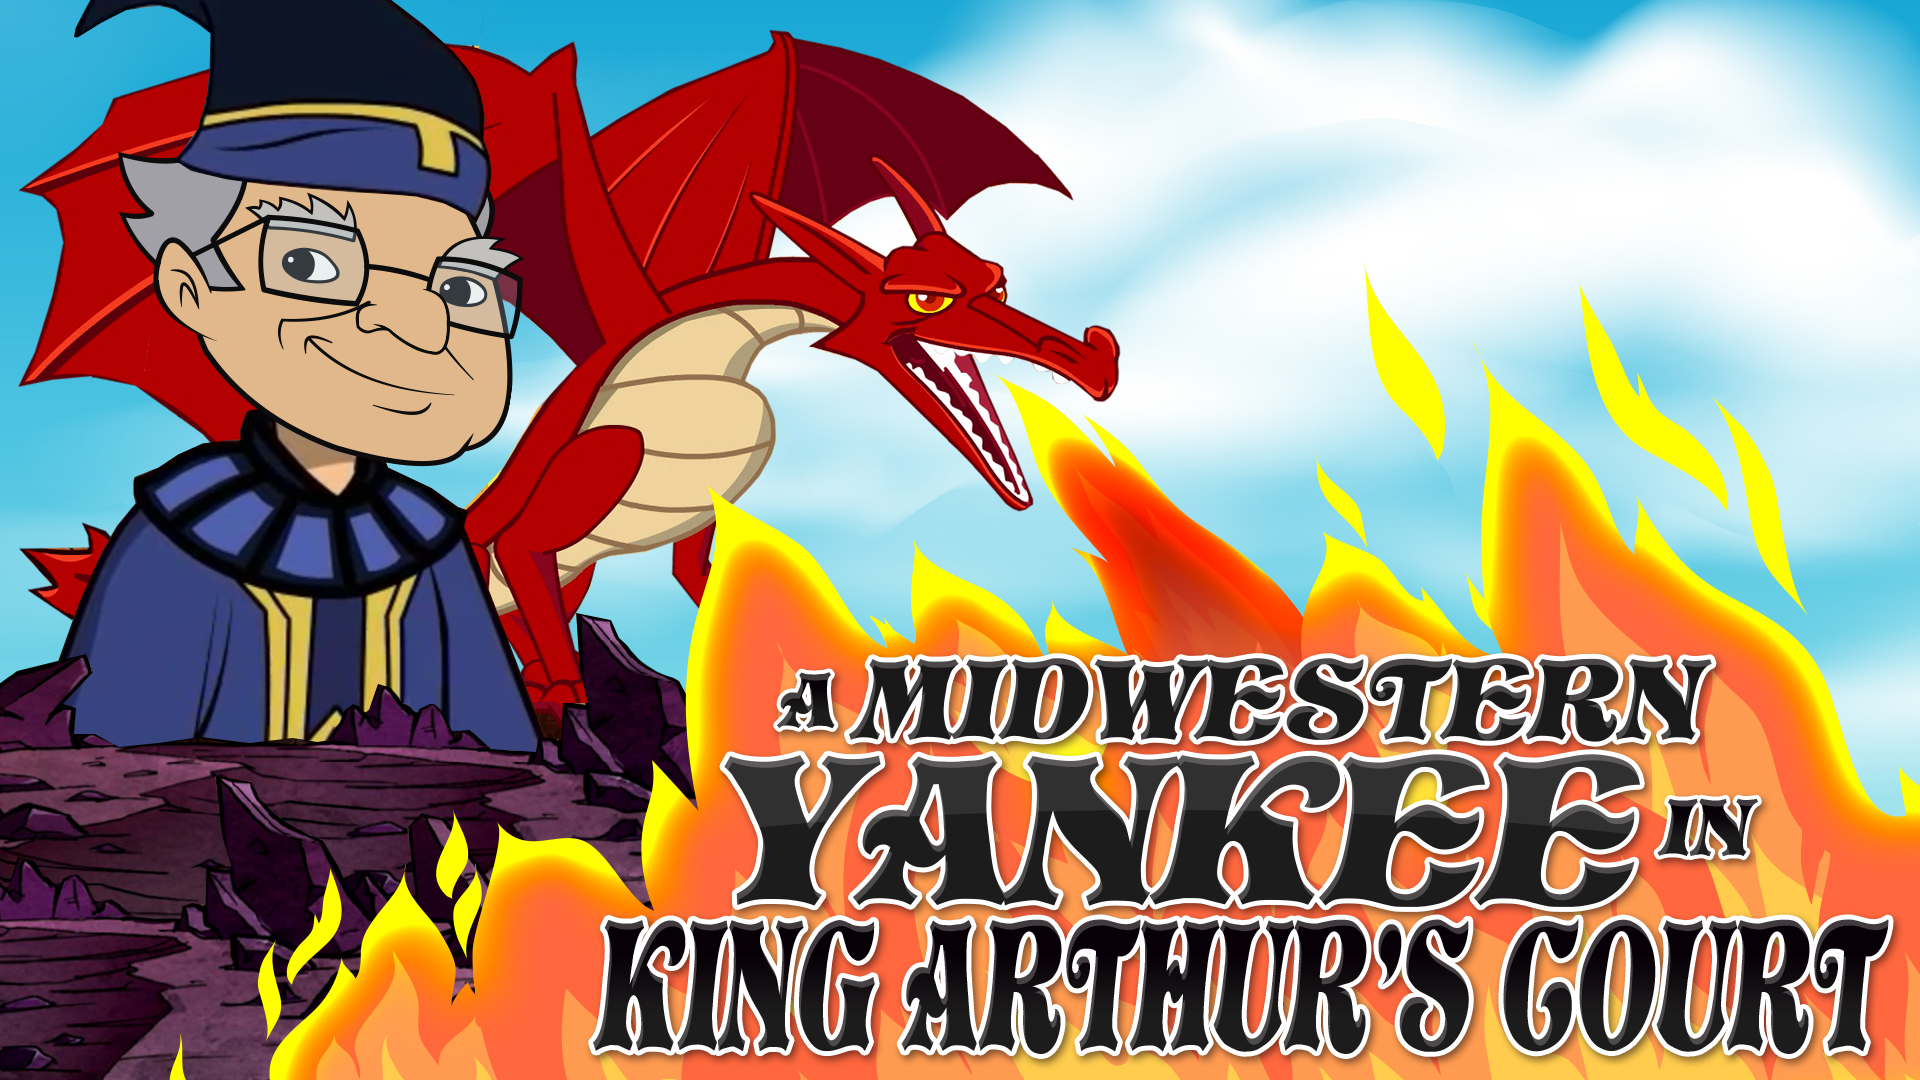 A Midwestern Yankee in King Arthur's Court